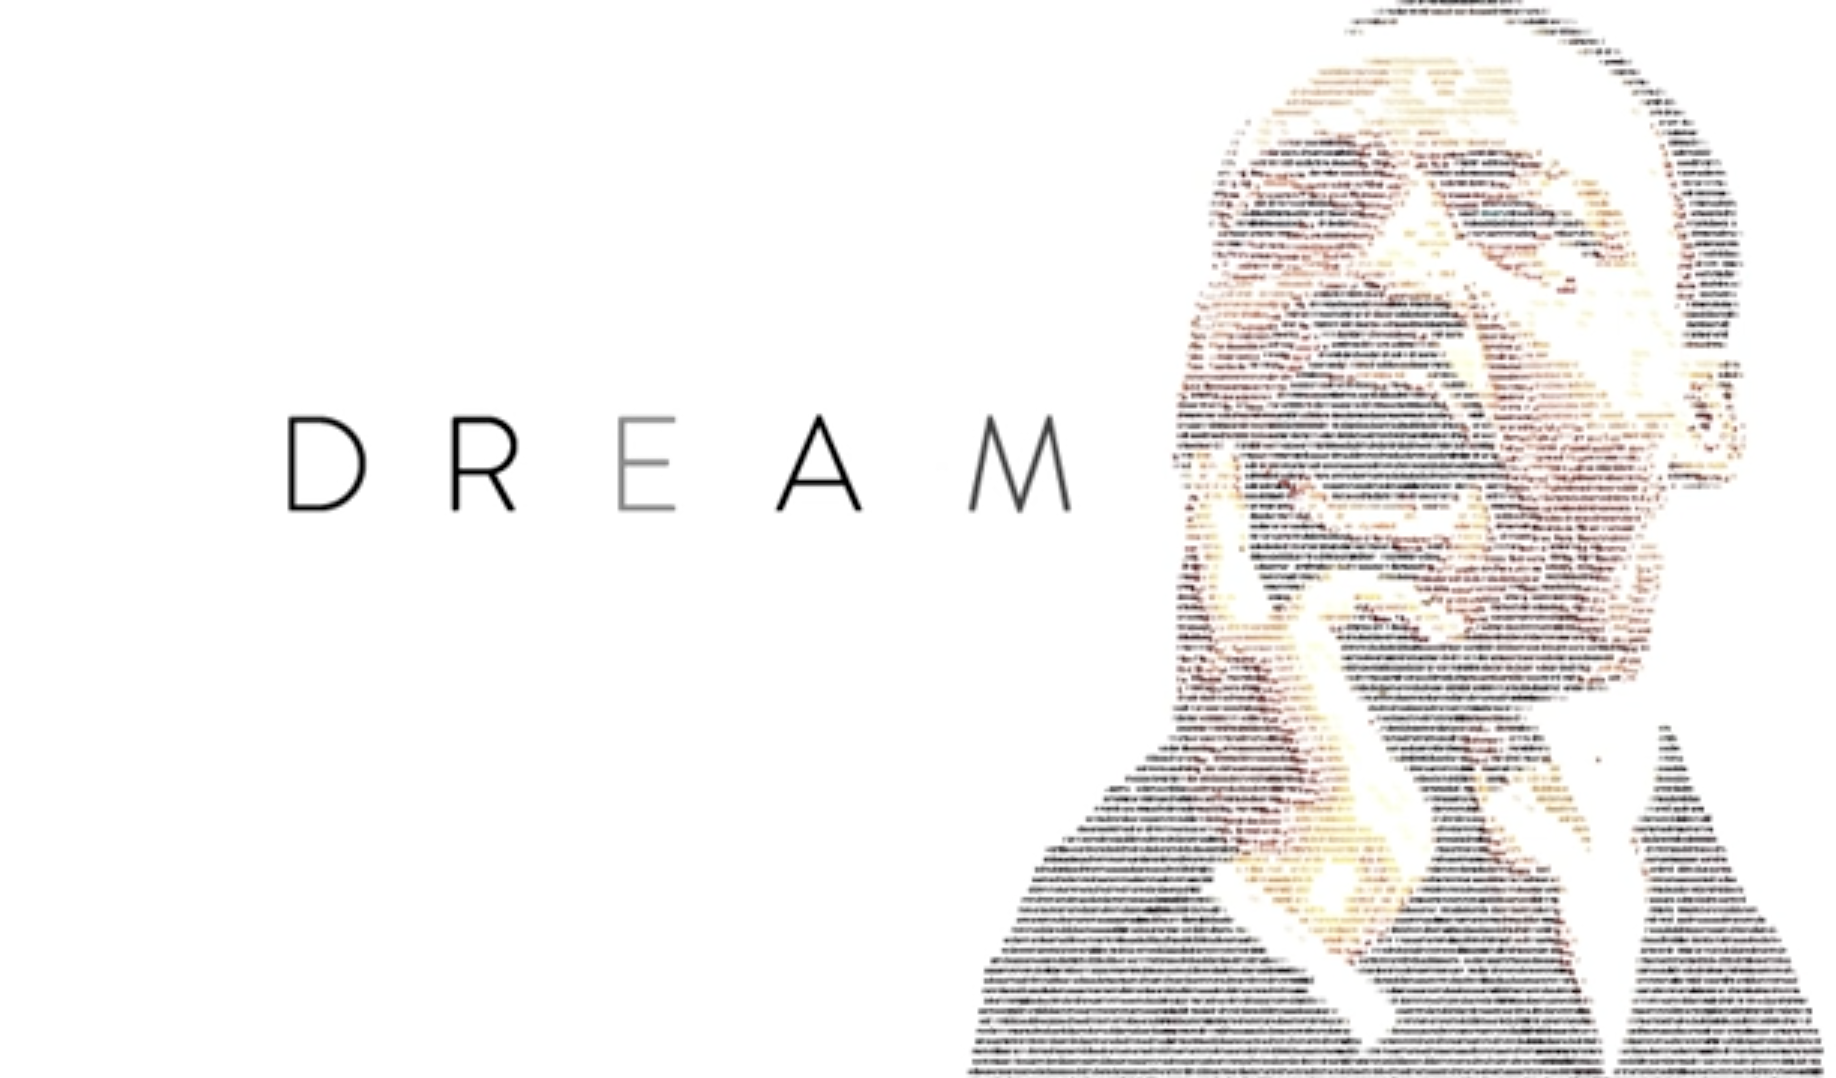 MLK Jr. Dream Speech